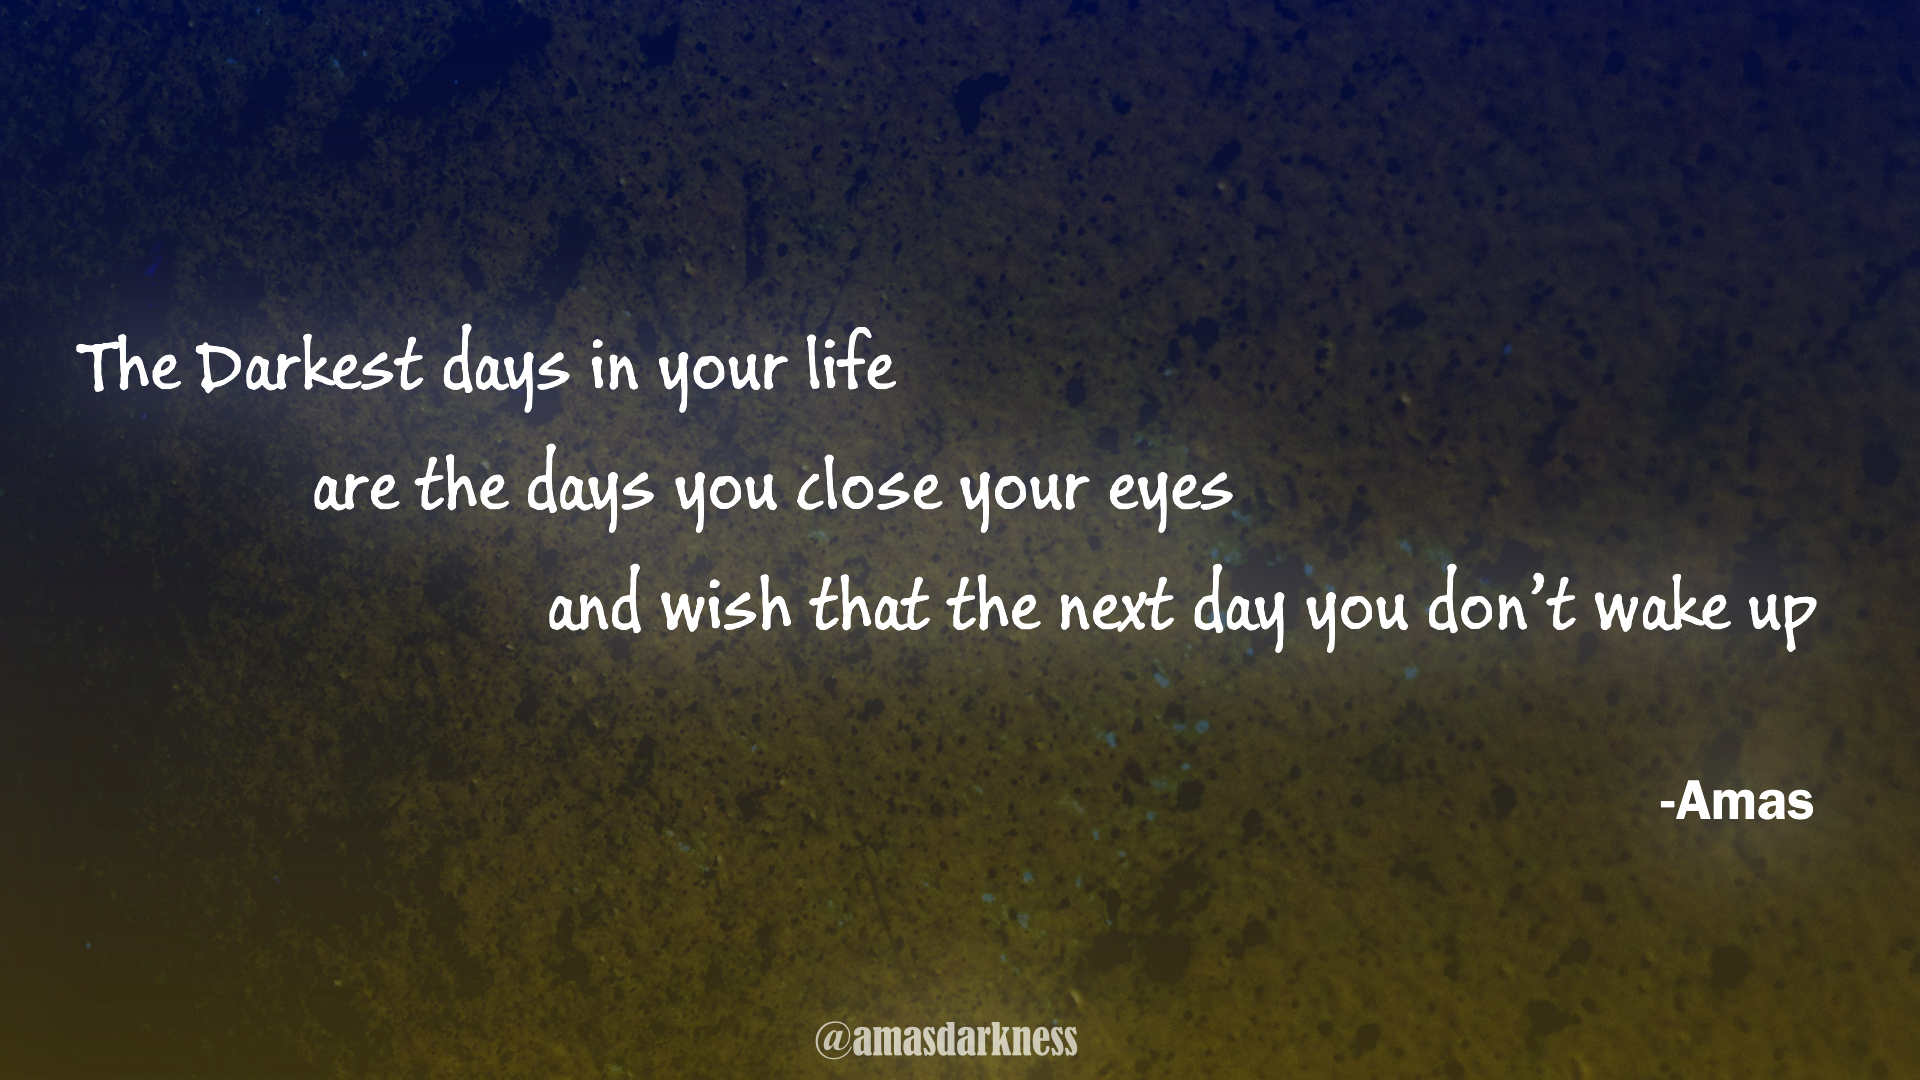 """The Darkest days in your life, are the days you close your eyes, and wish that the next day you don't wake up"" -Amas [1920×1080]"